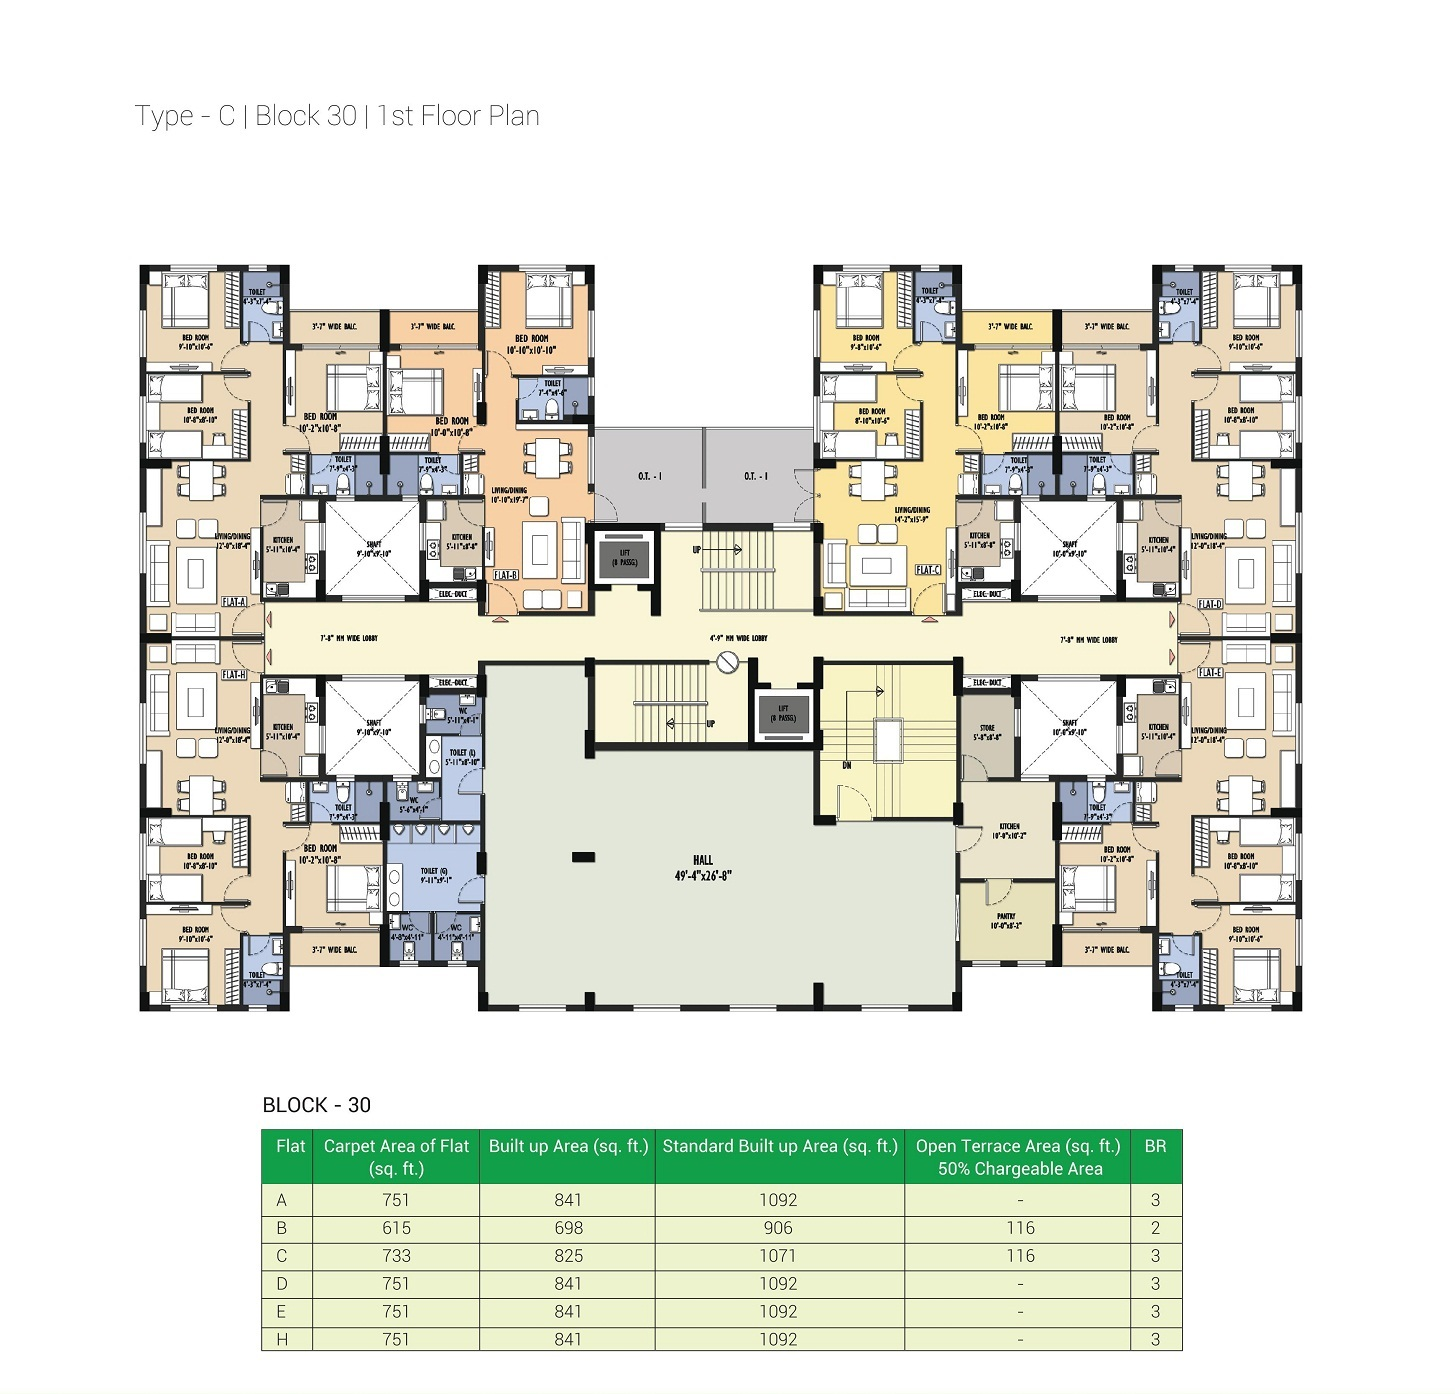 Block 30 - 1st Floor Plan